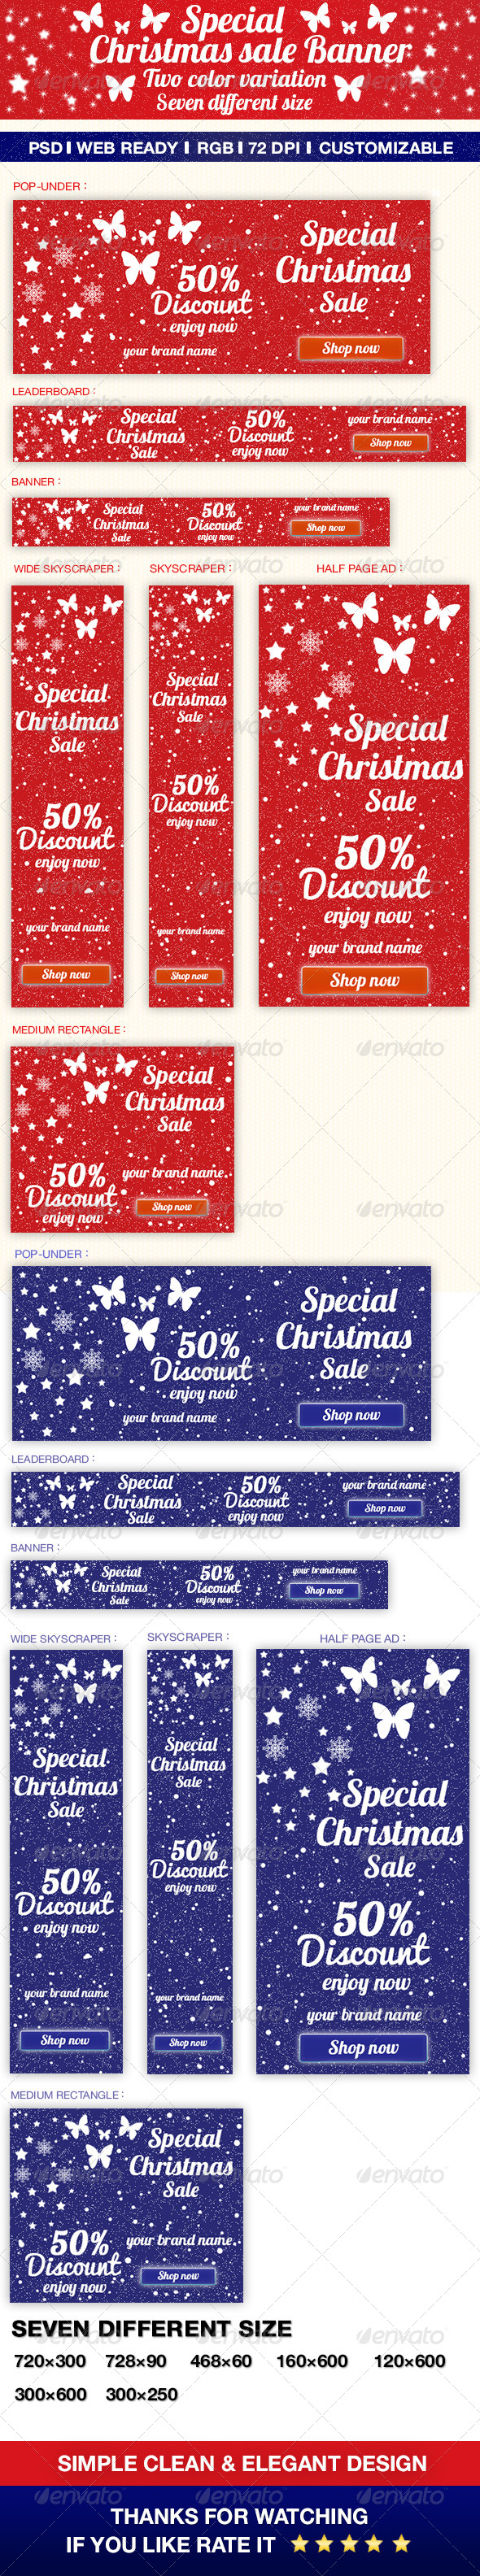 GraphicRiver Special Christmas Sale Banners 6461521